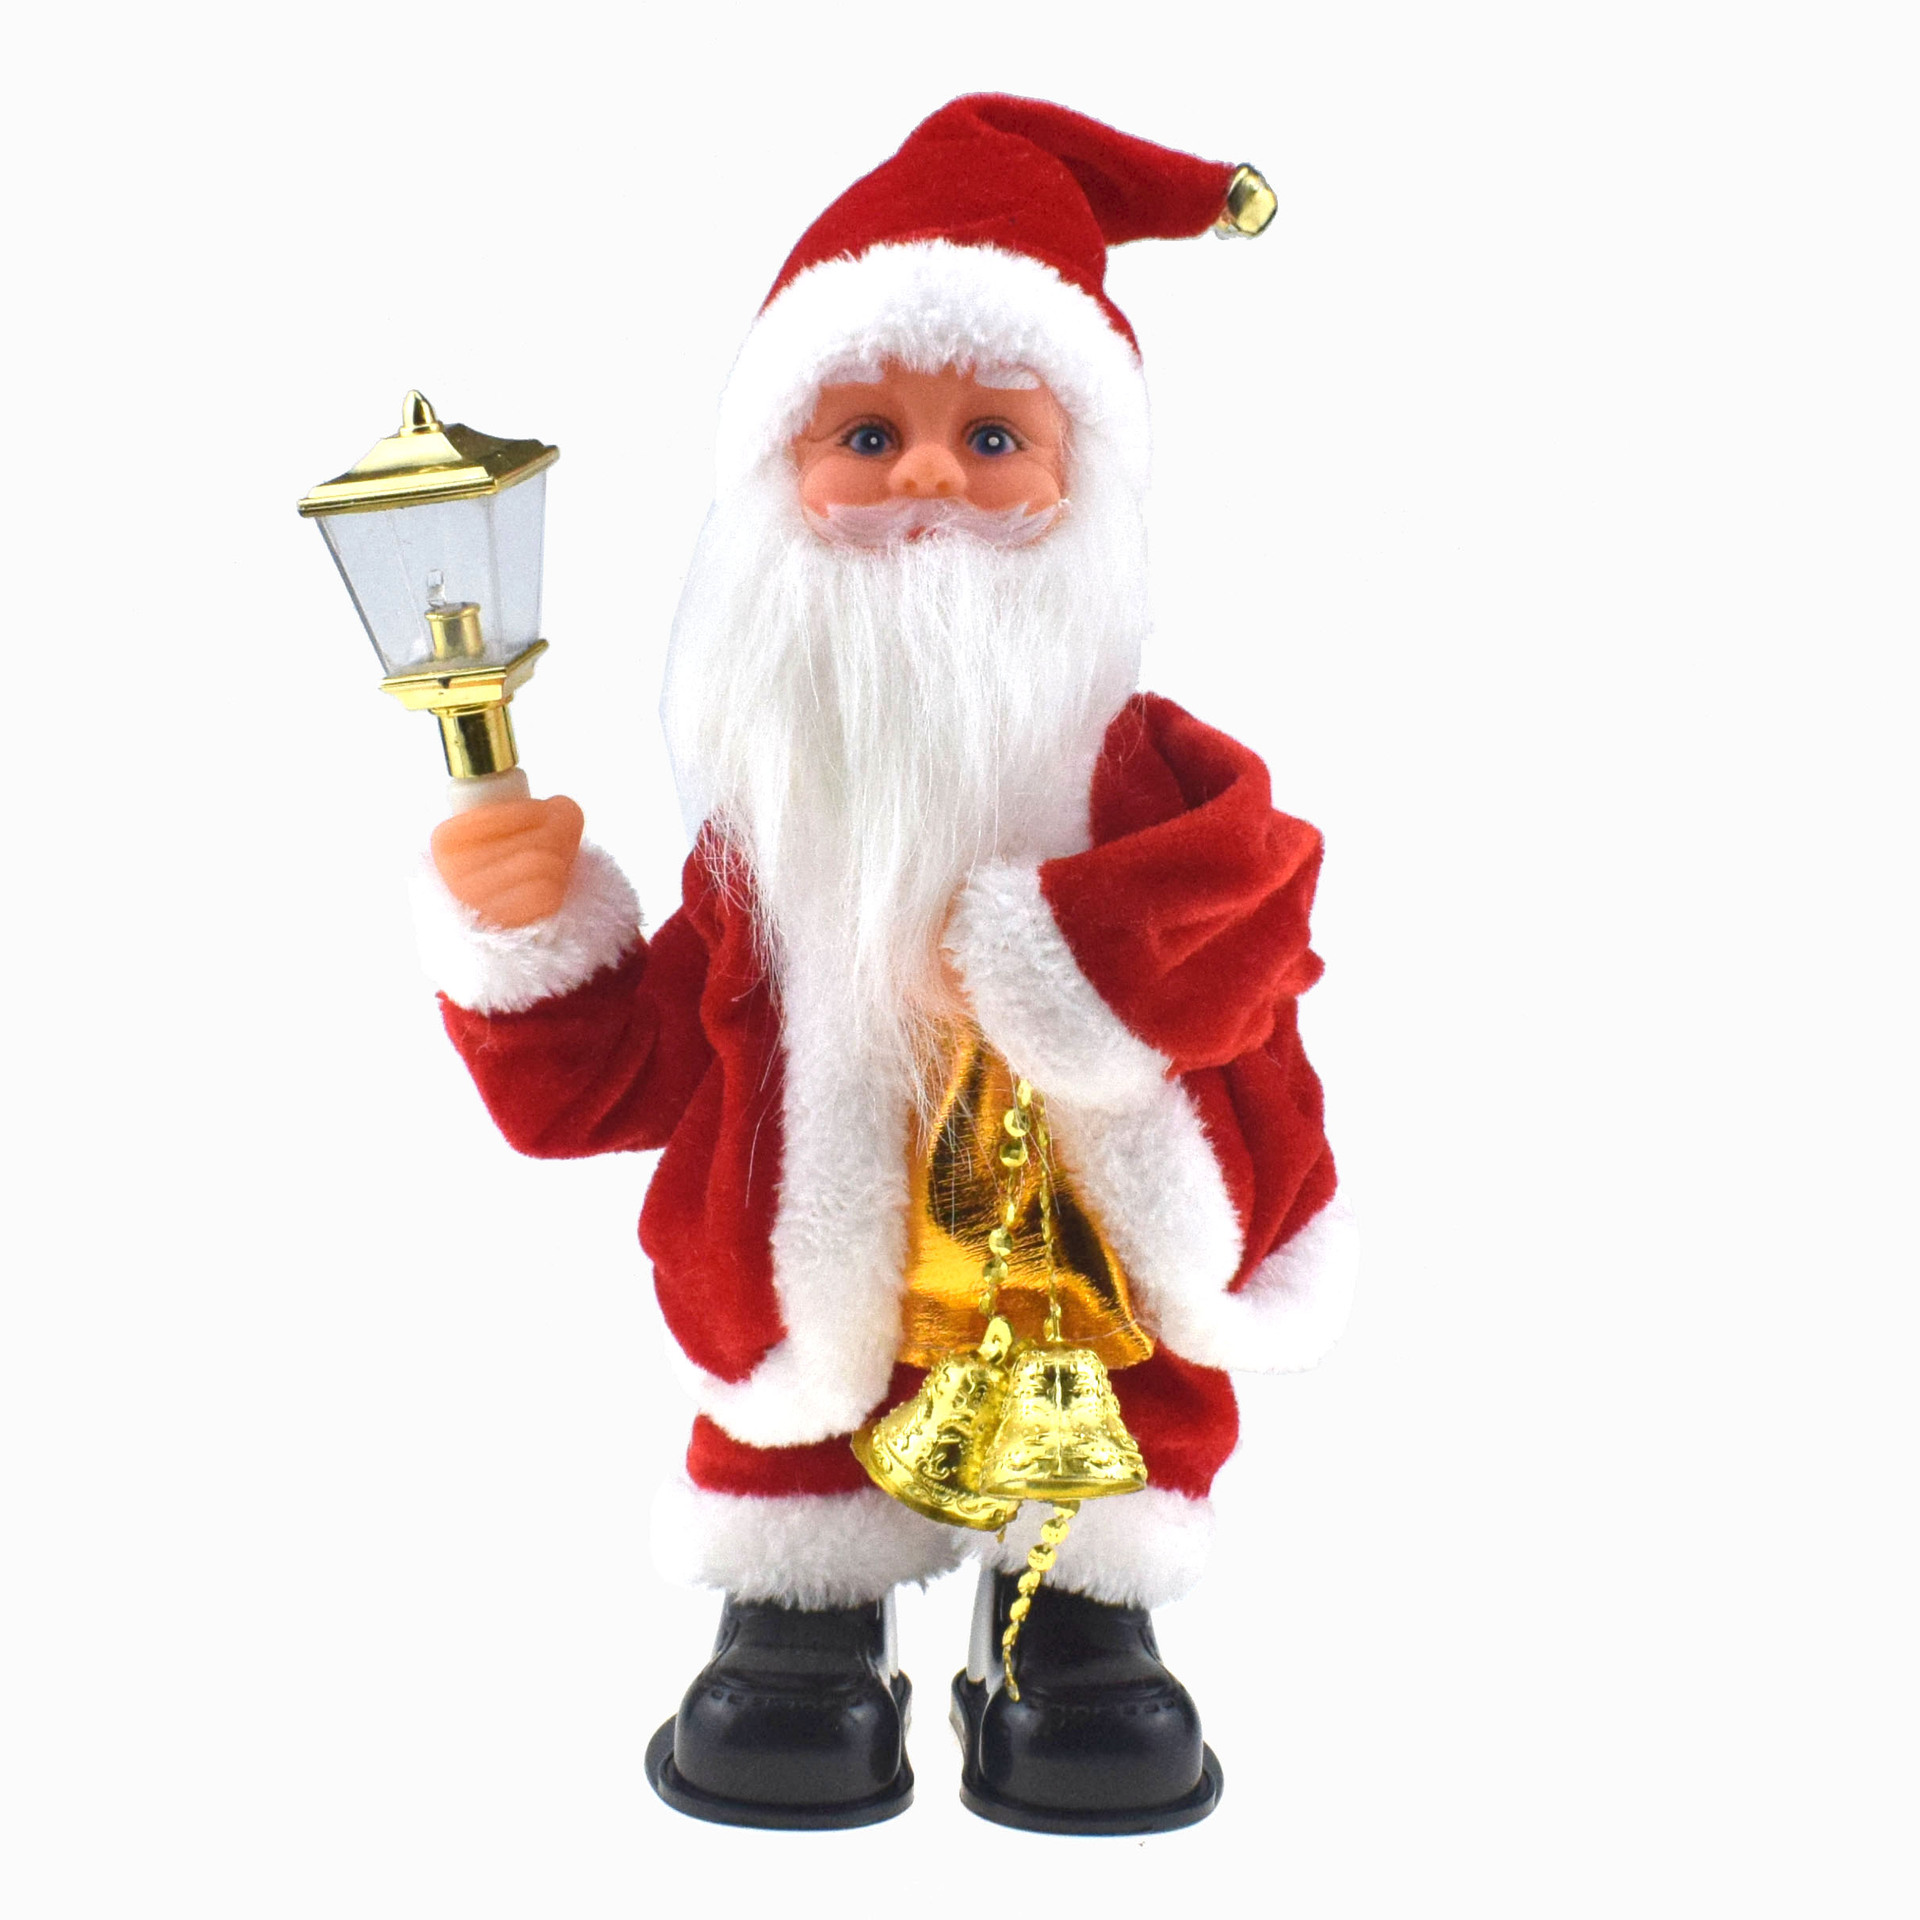 Creative Novelty Shake Lamp Mention Bell Santa Claus Doll With Music Electric Will Sway Christmas Elder's Day Toy